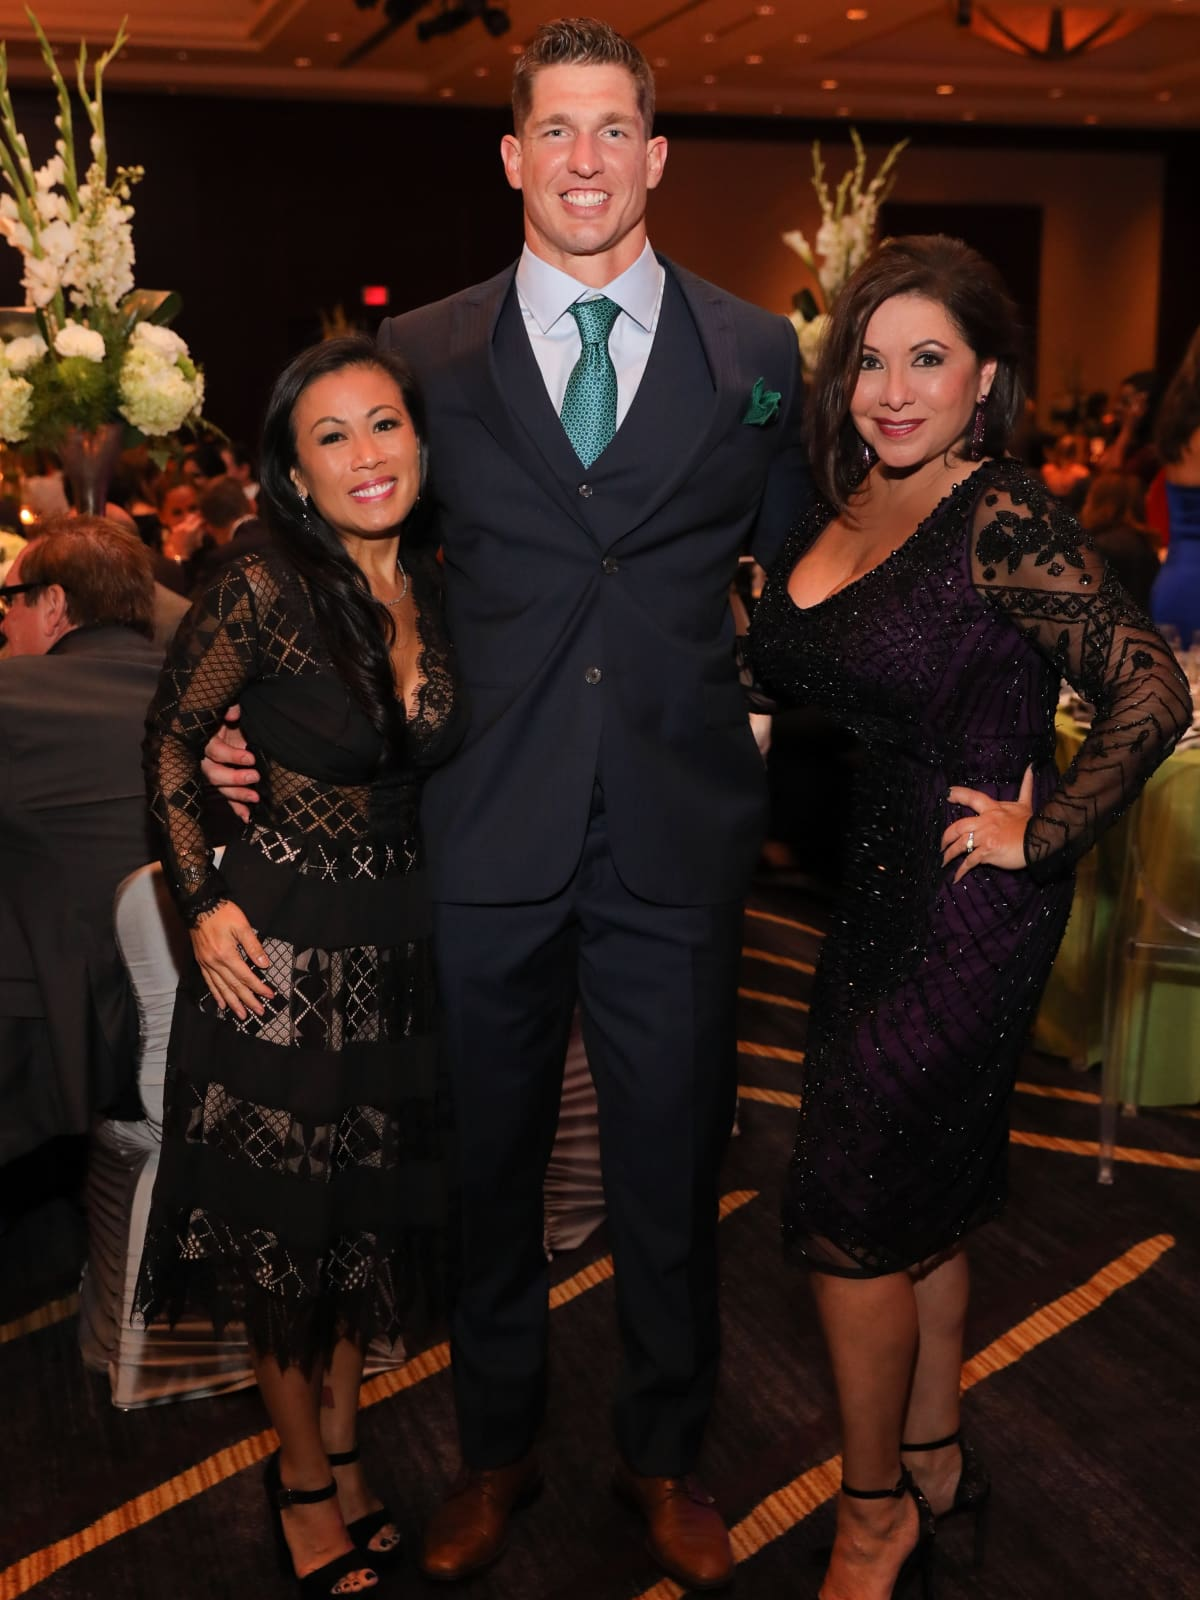 Chau, Brian and Debbie at Festari Gala